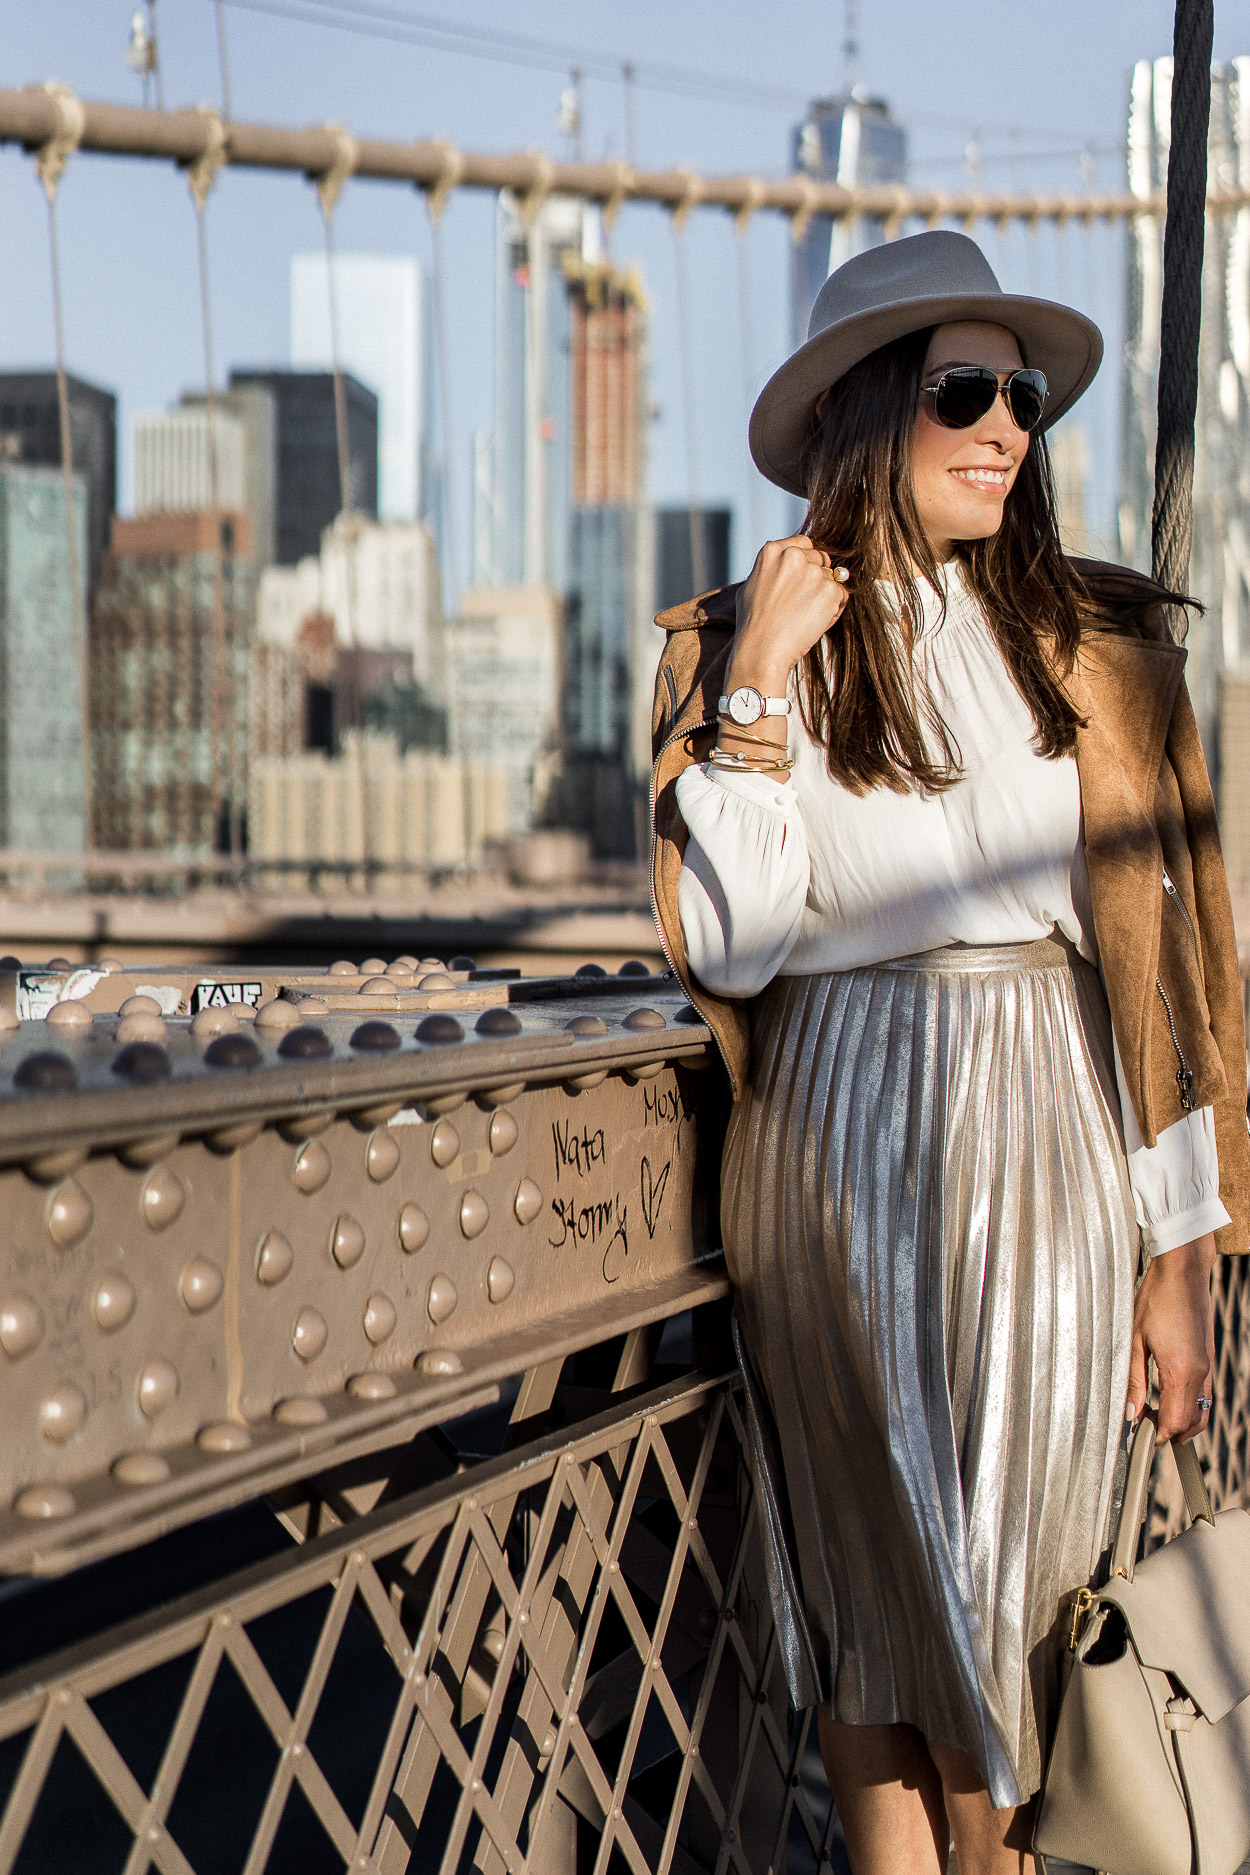 Mixing a metallic pleated skirt with neutrals makes for perfect Fall fashion shown by Amanda of A Glam Lifestyle blog